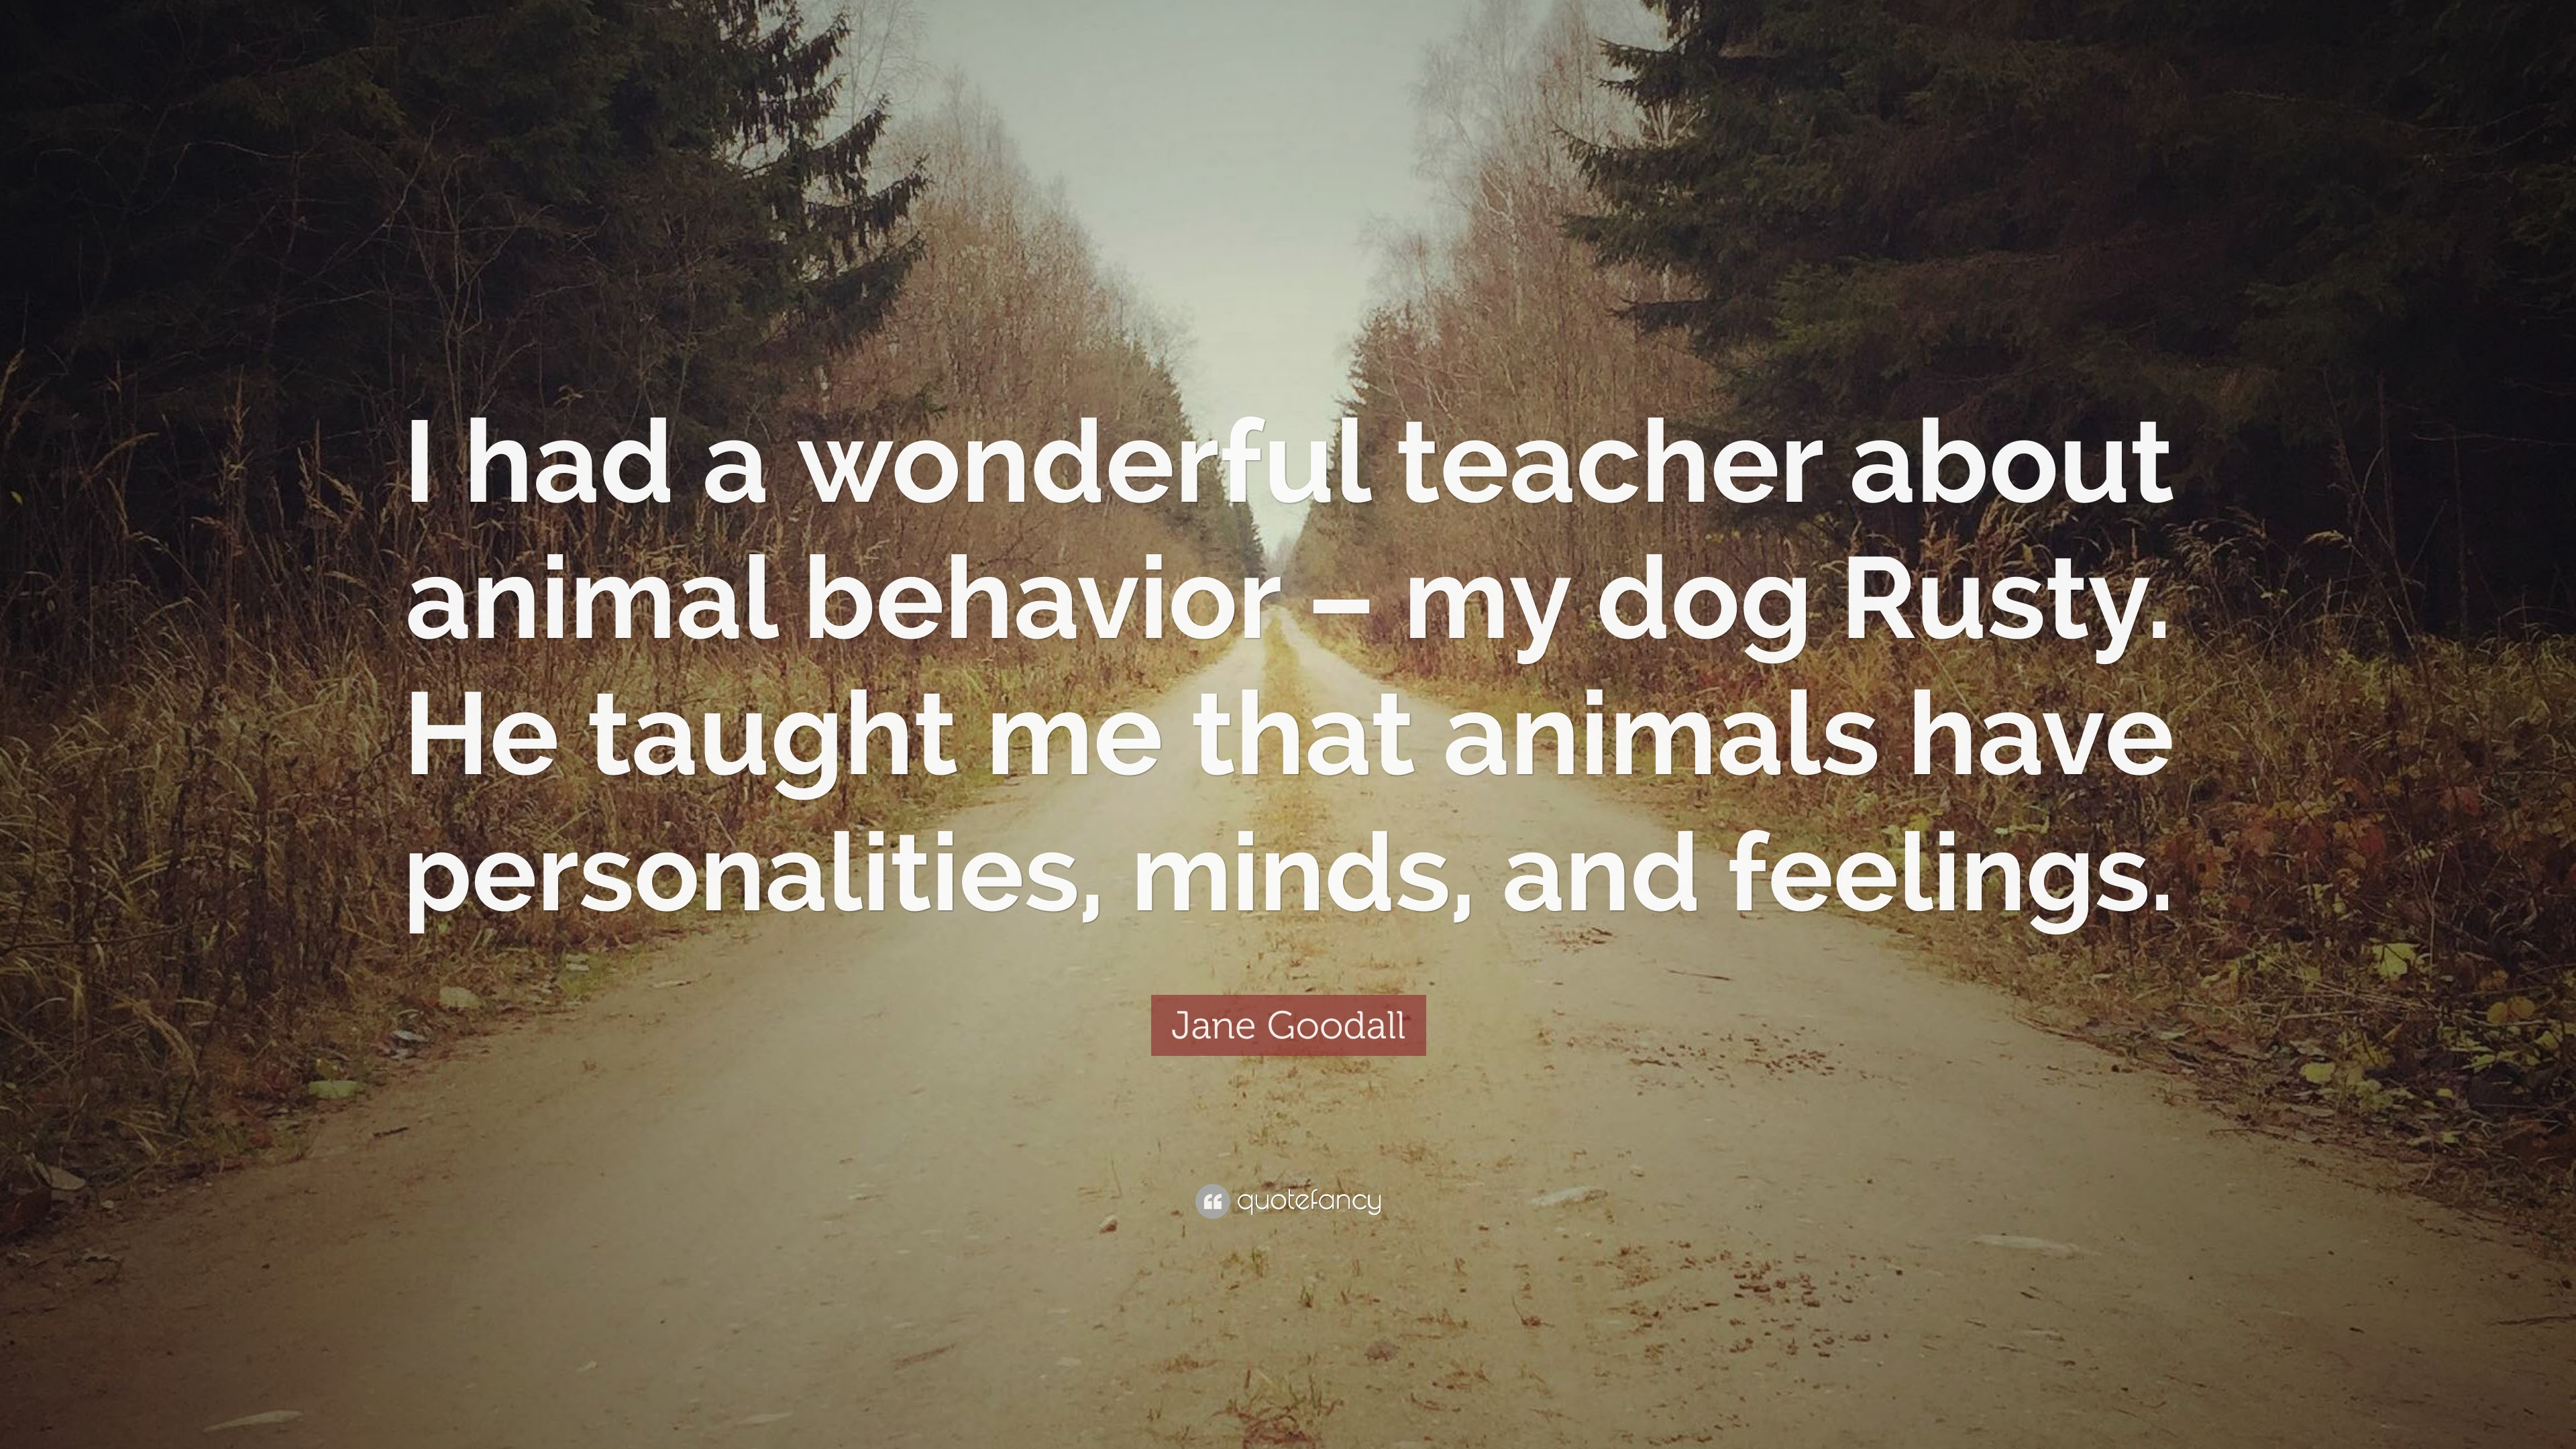 I Had A Wonderful Teacher About Animal Behavior Jane Goodall